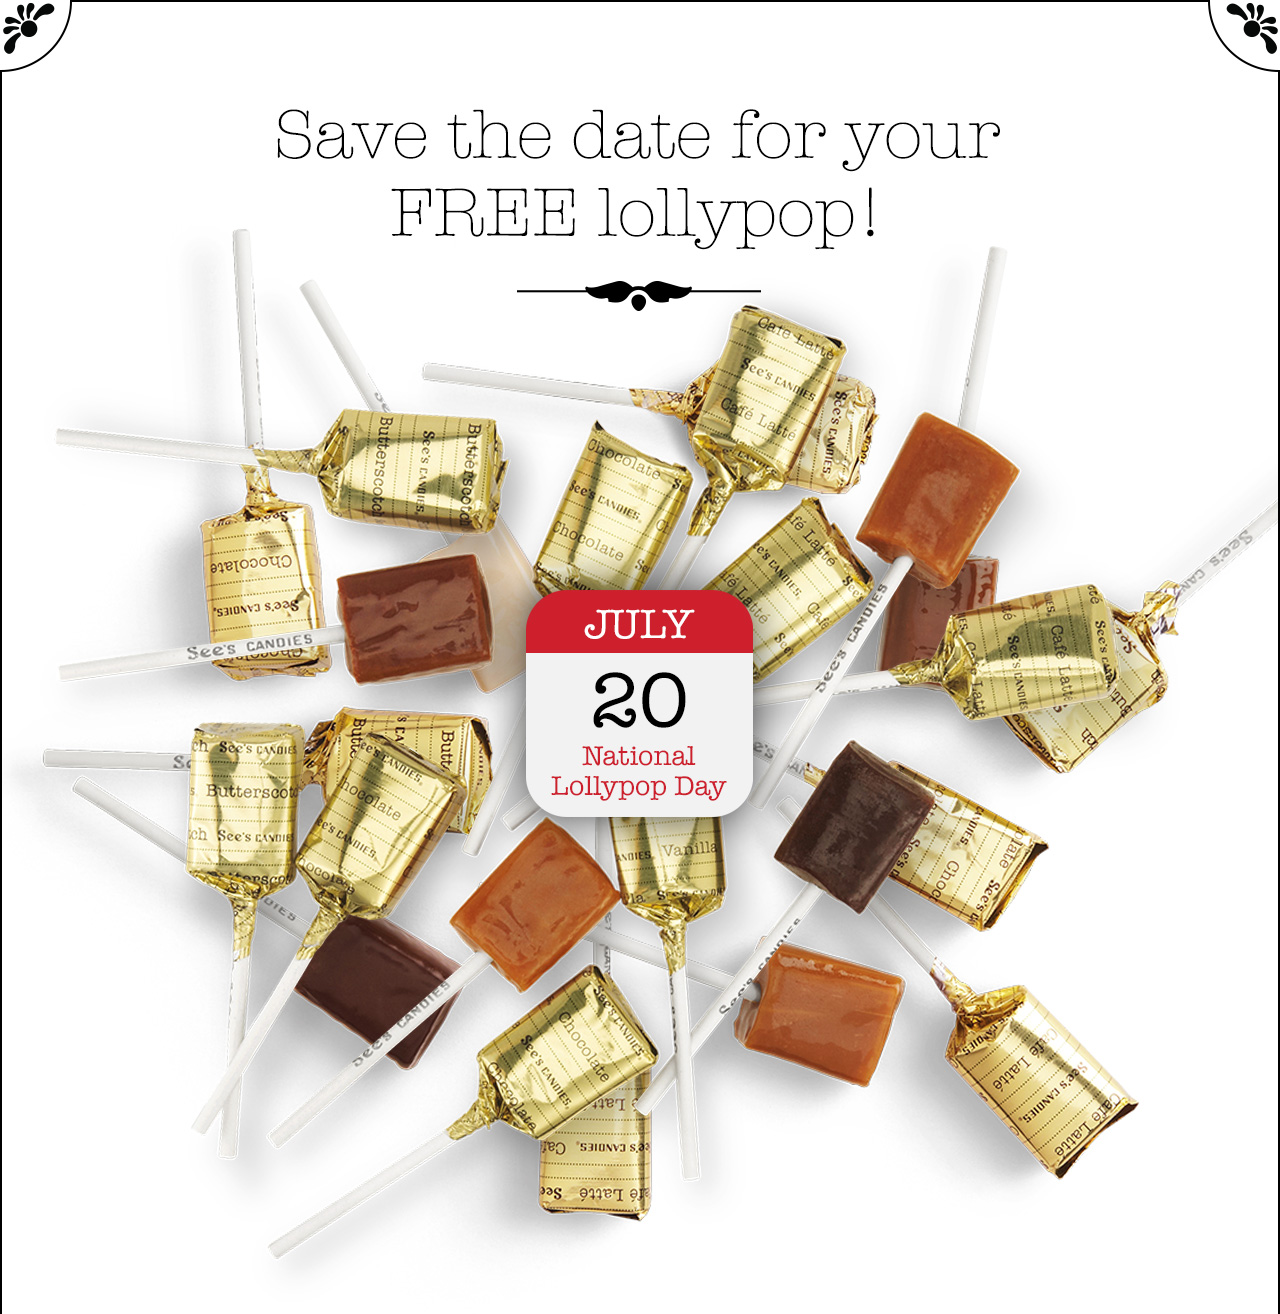 Save the date for your FREE lollypop!